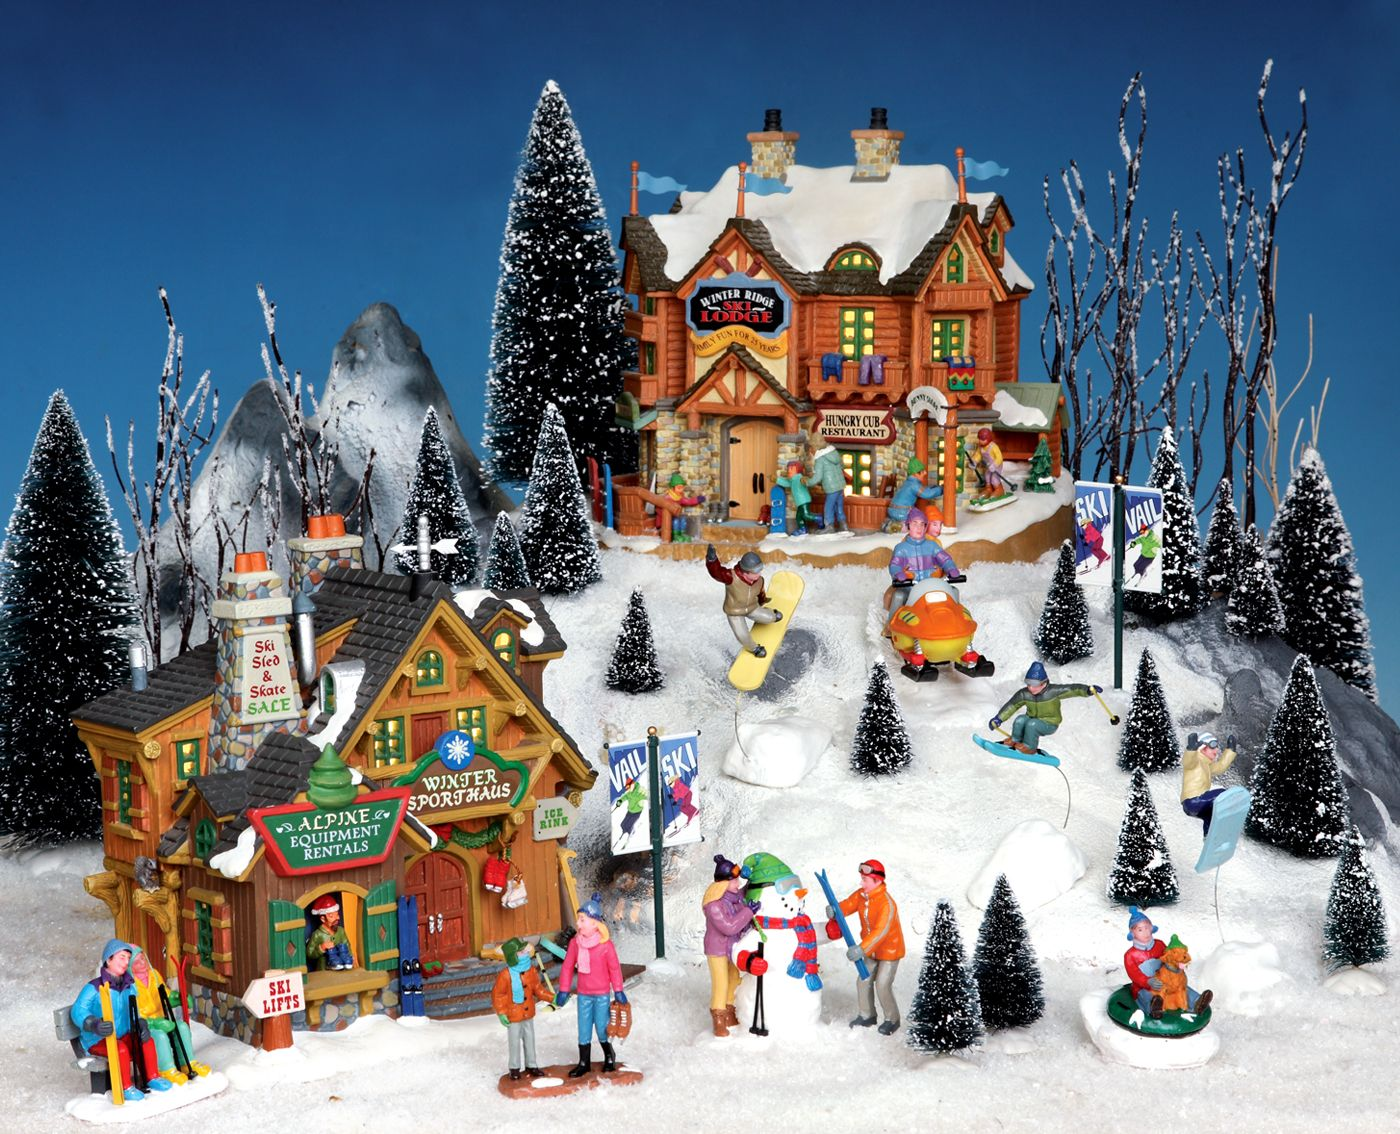 Christmas Village Ski Lift For Sale.Lemax Vail Village Somehow I Want To Add This To My Lemax